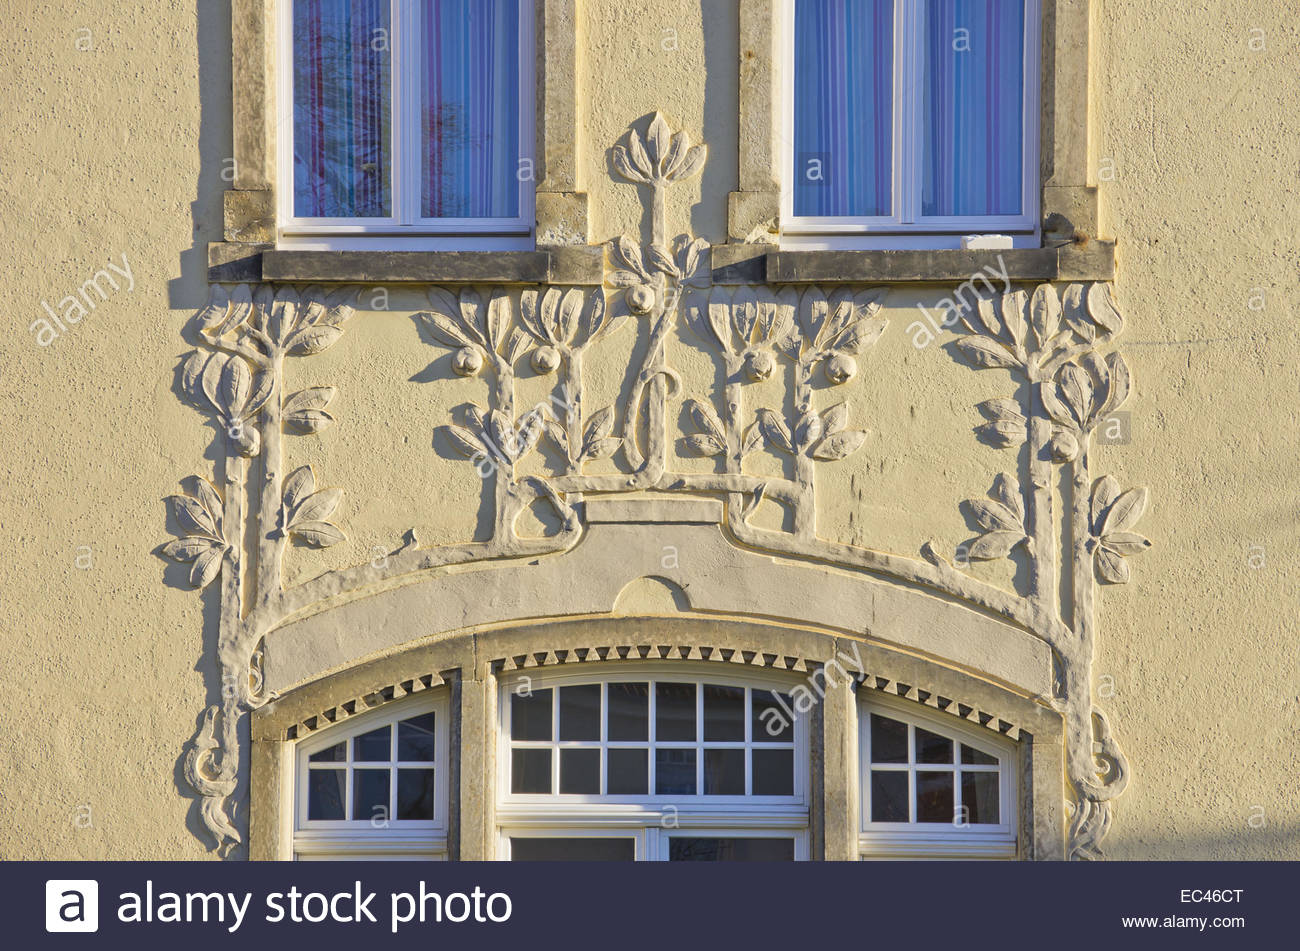 Adornment on a house front, Dresden, German - Stock Image